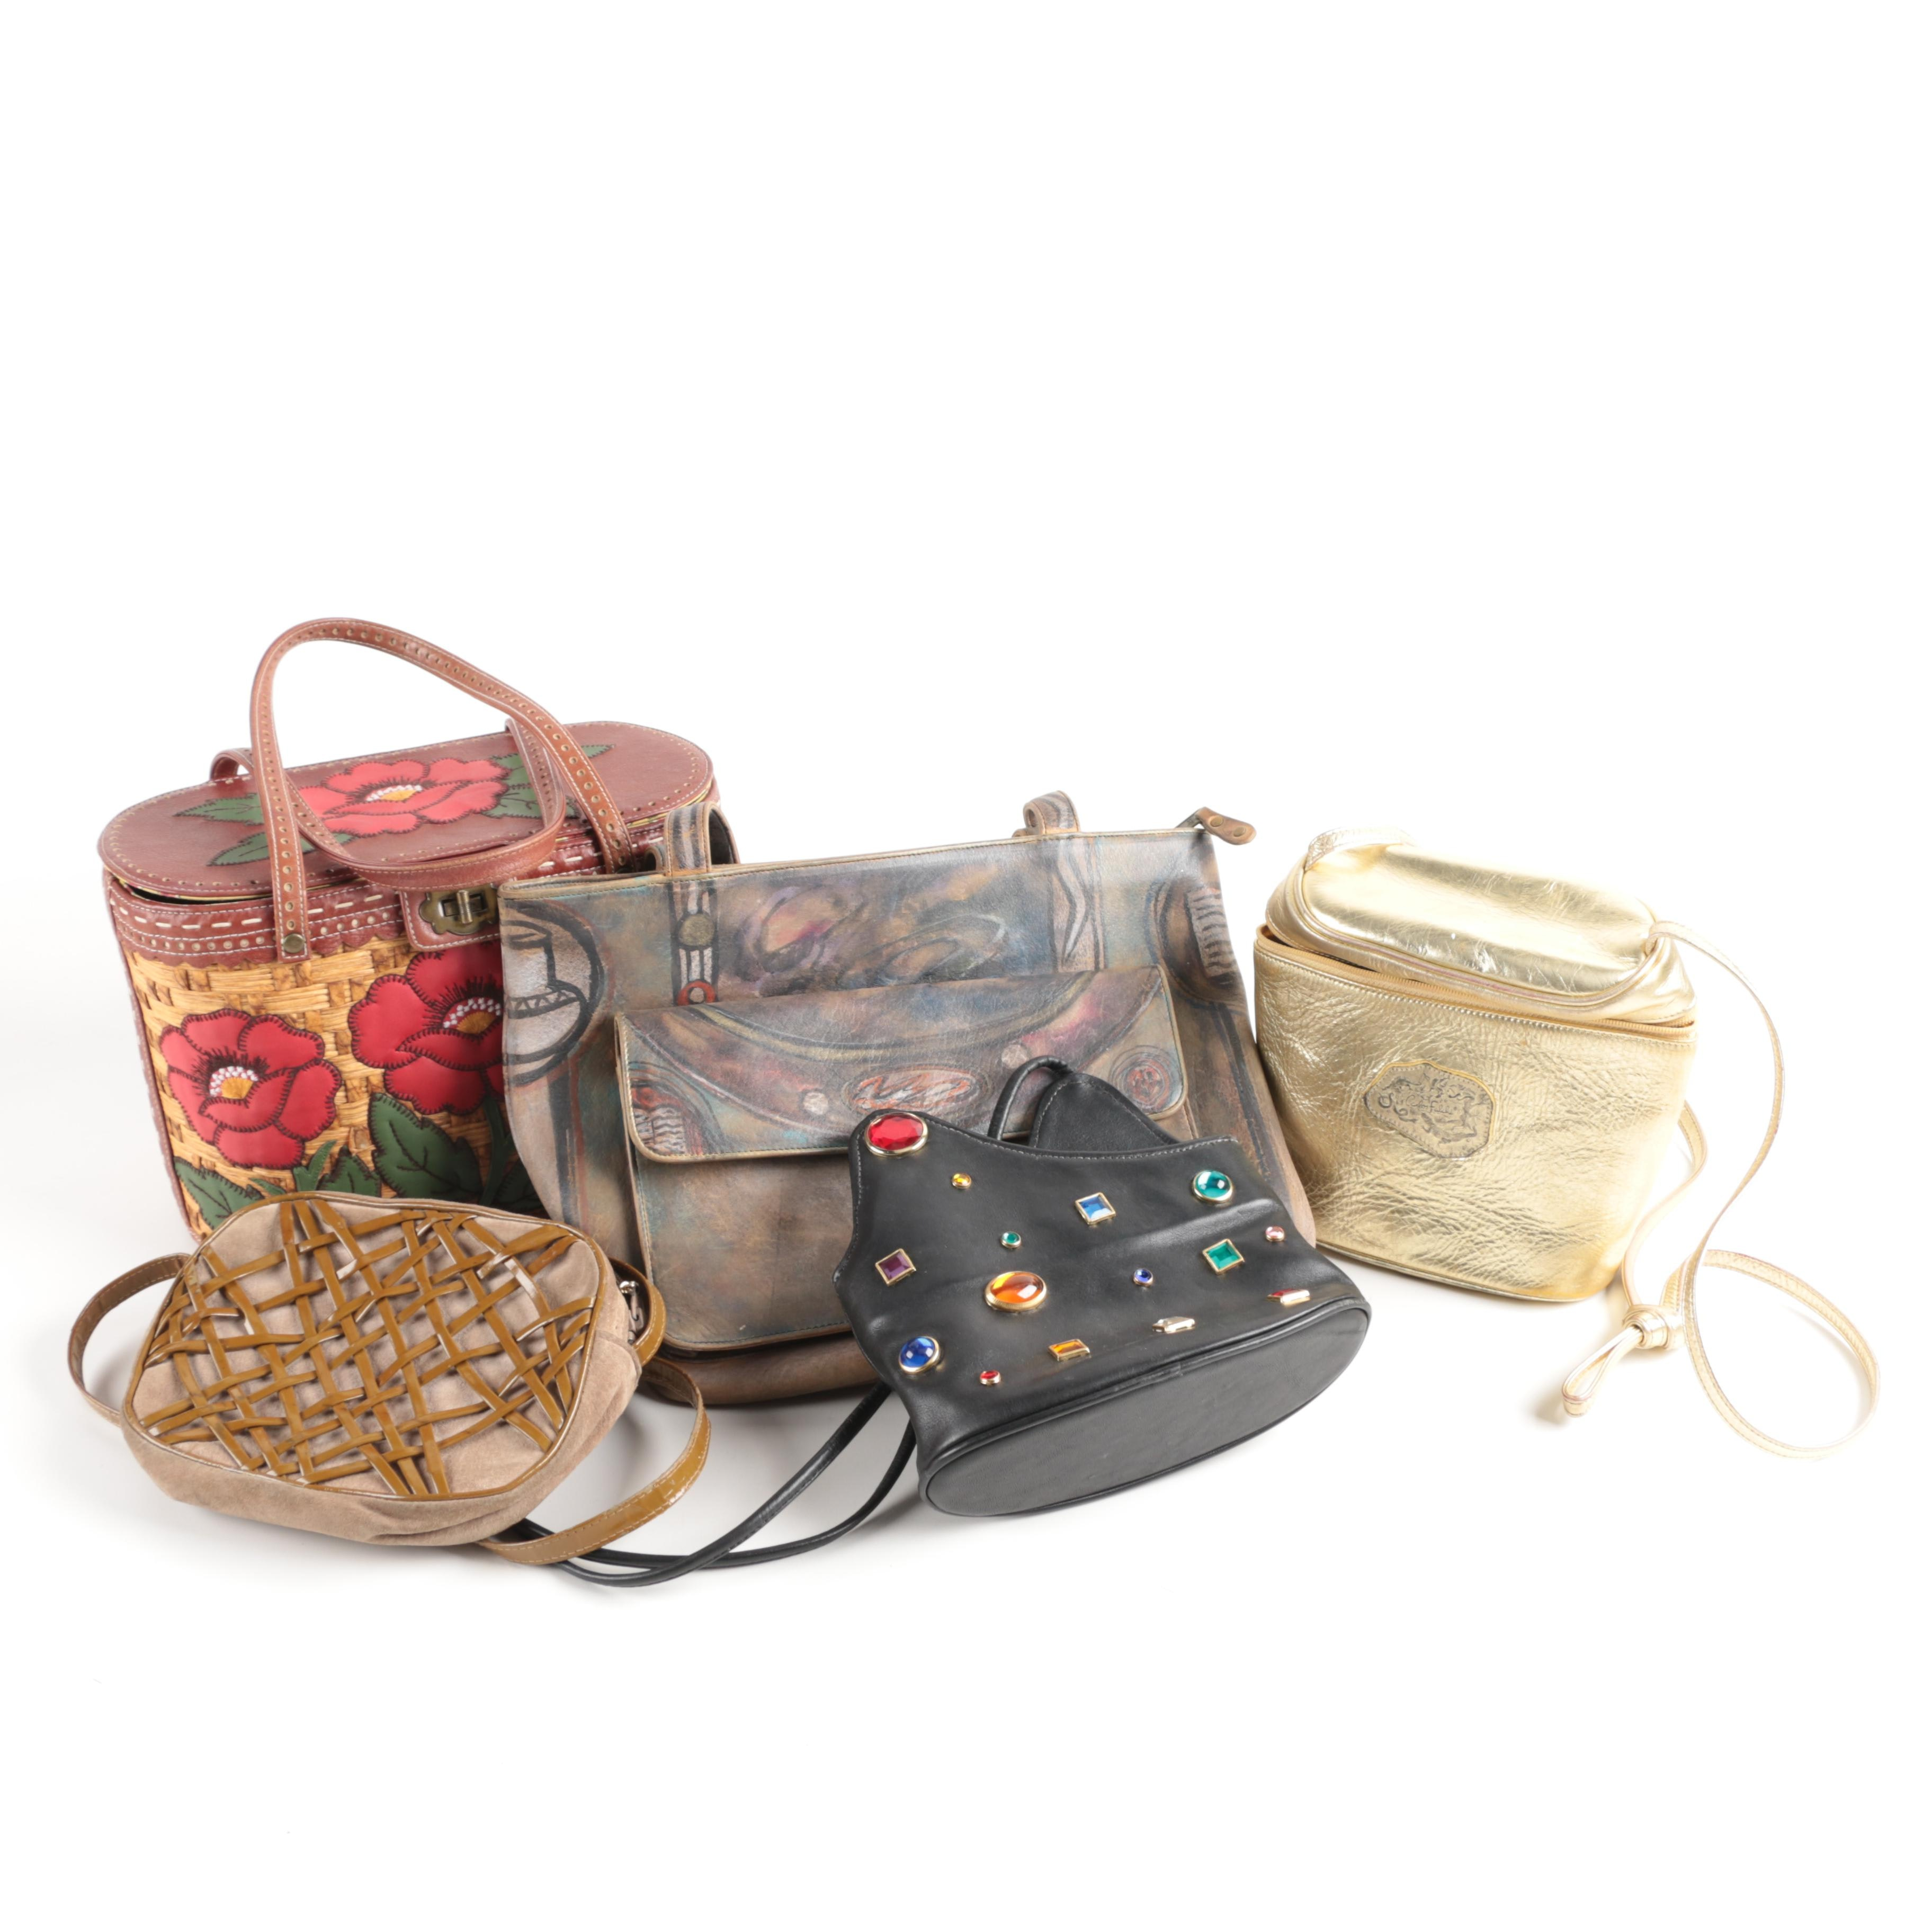 Handbags Featuring Jane Yoo and Isabella Fiore